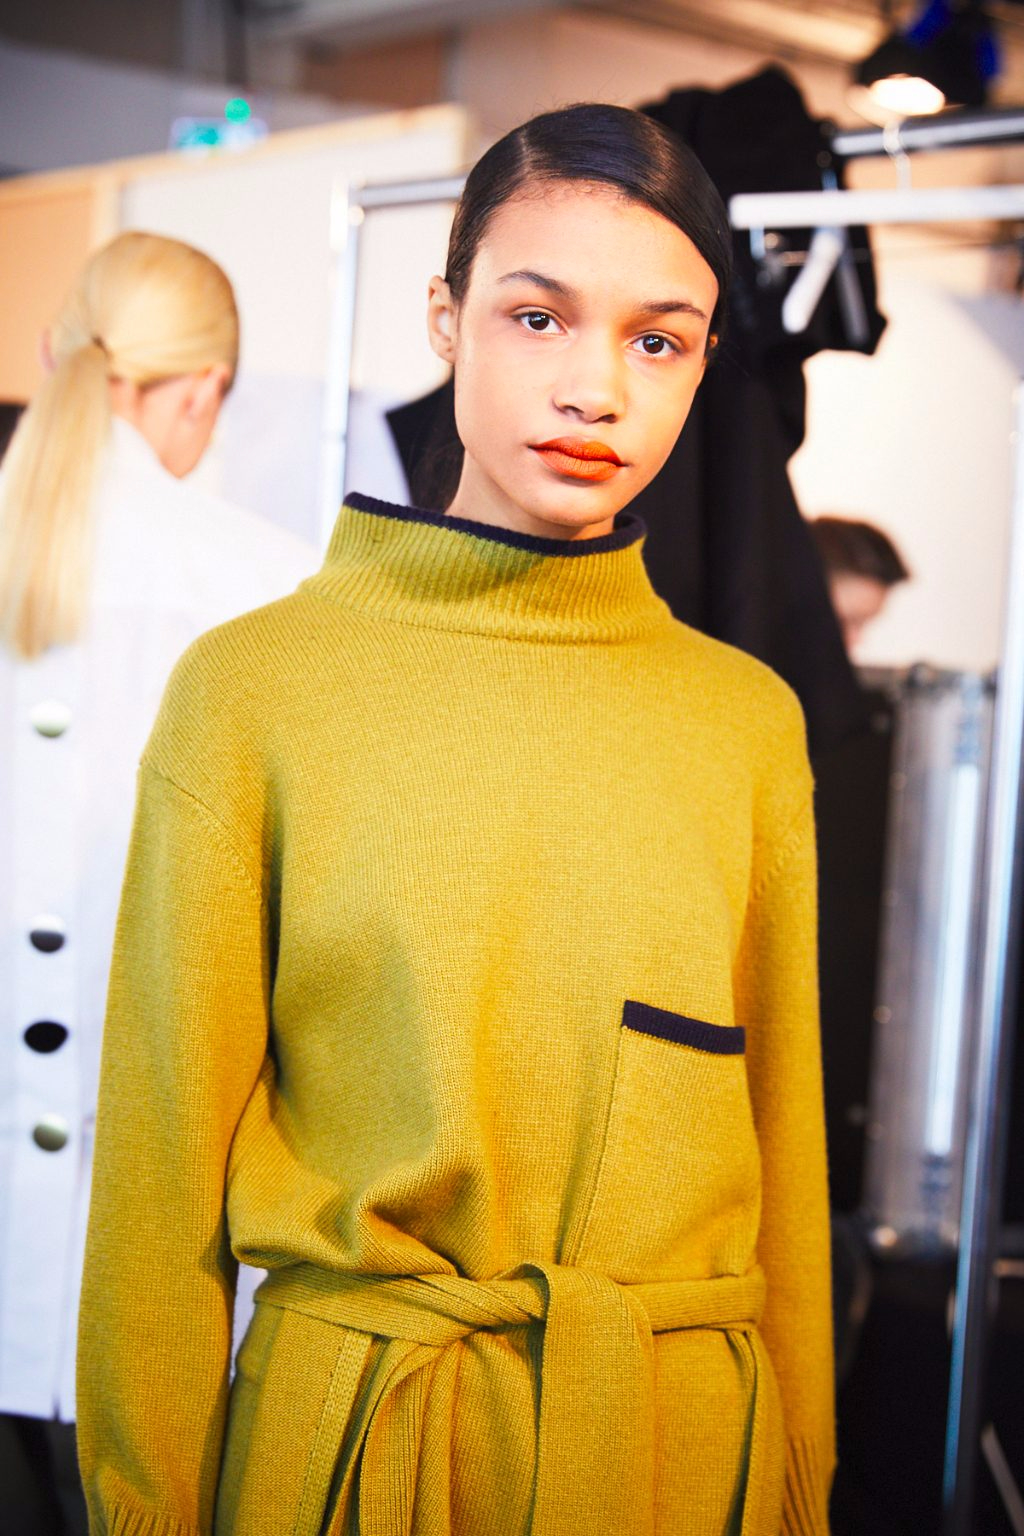 LFW-AW17-Eudon-Choi-backstage-Ambra-Vernuccio-The-Upcoming-70-1024x1536